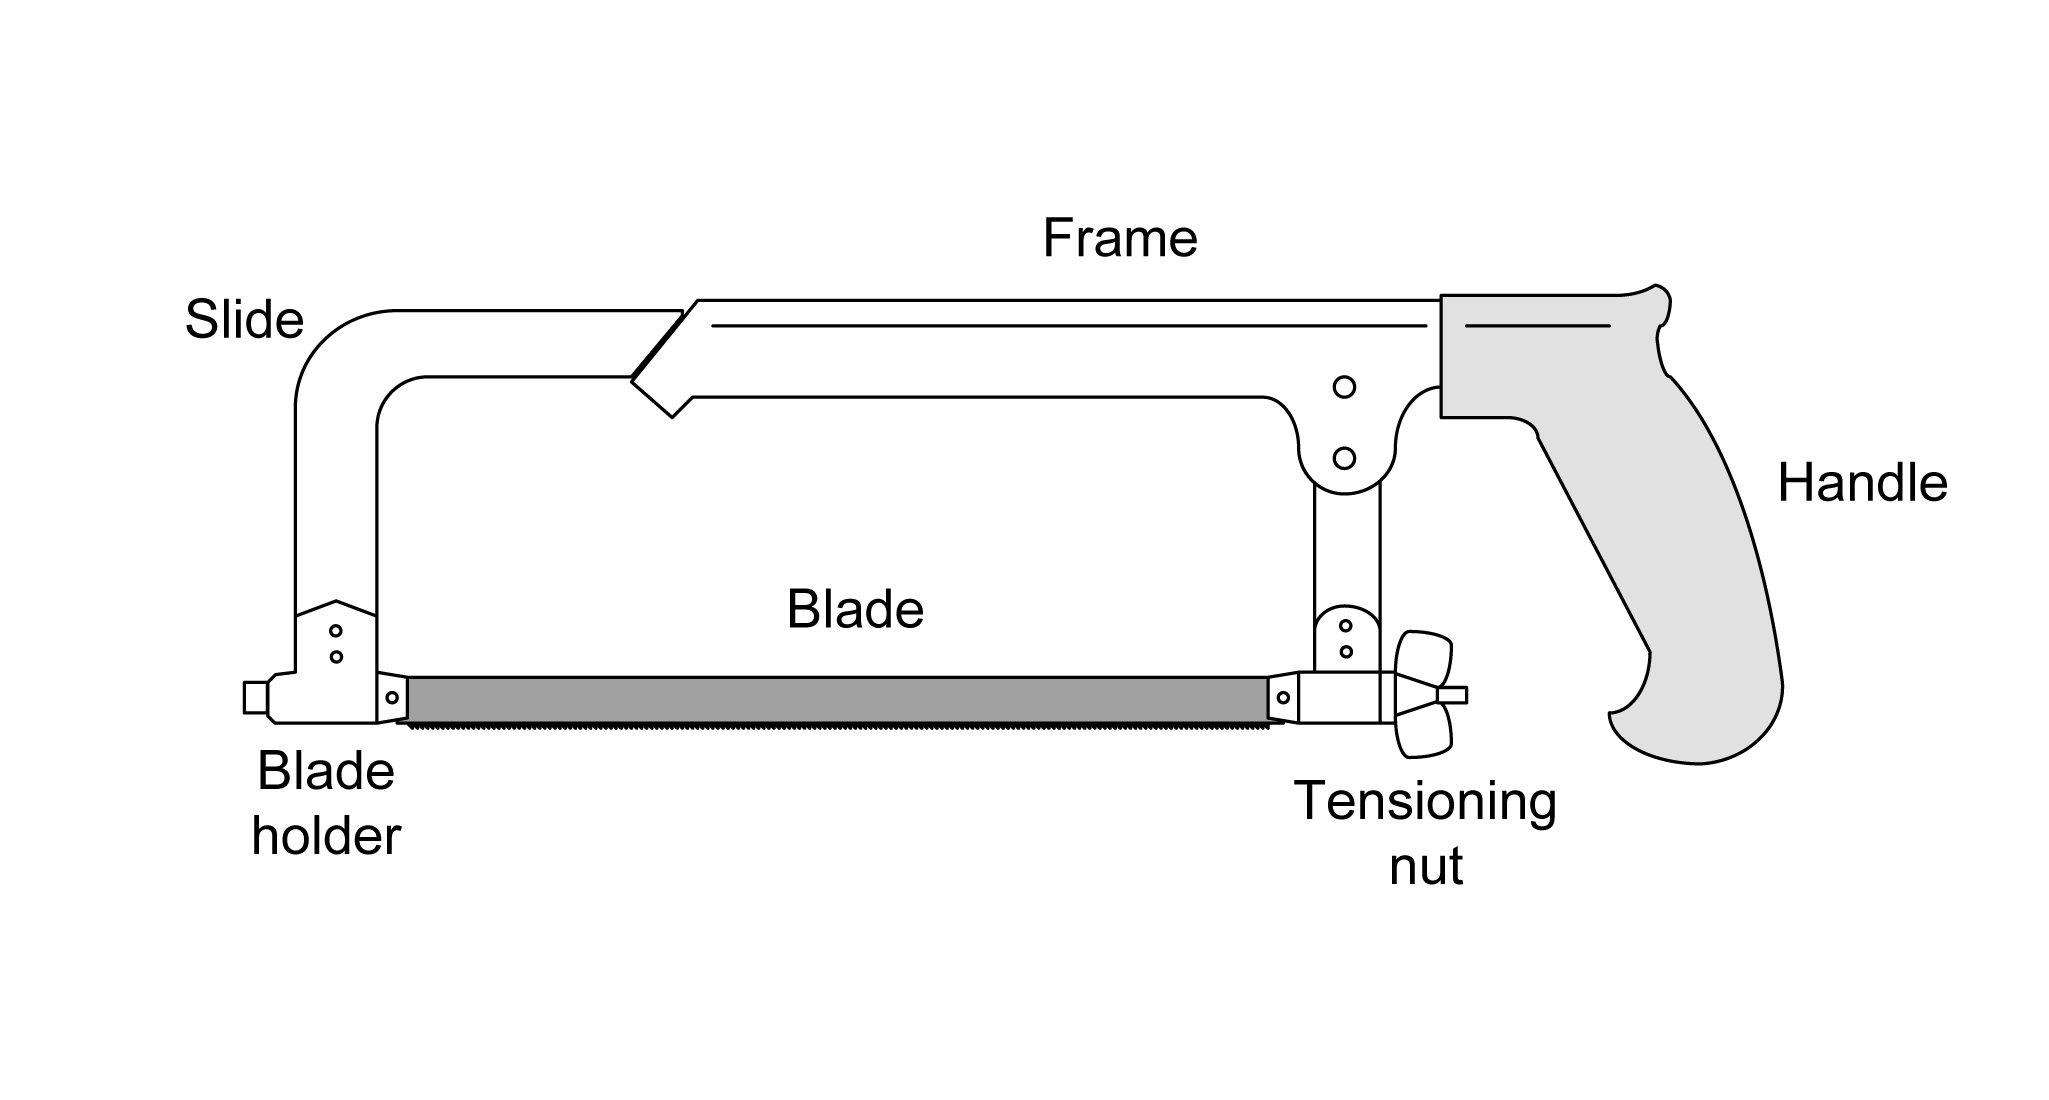 4 Tool Techniques Practical Electronics Components And 22 Rifle Parts Diagram Engine Car Component Of A Typical Hacksaw